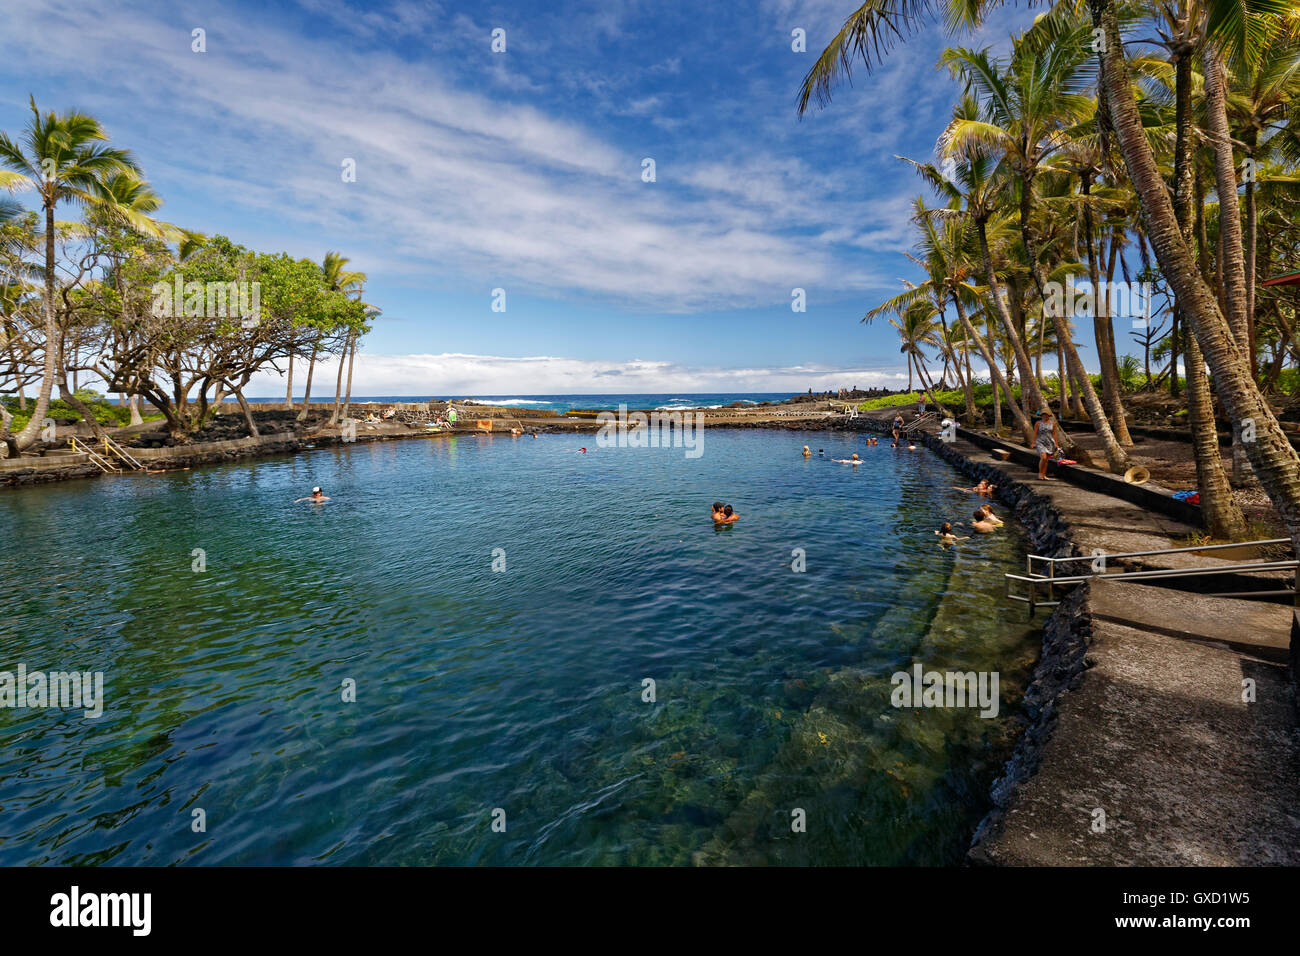 The Alahanui hot springs on the big island of Hawaii, a naturally heated pool that is fed with ocean water - Stock Image